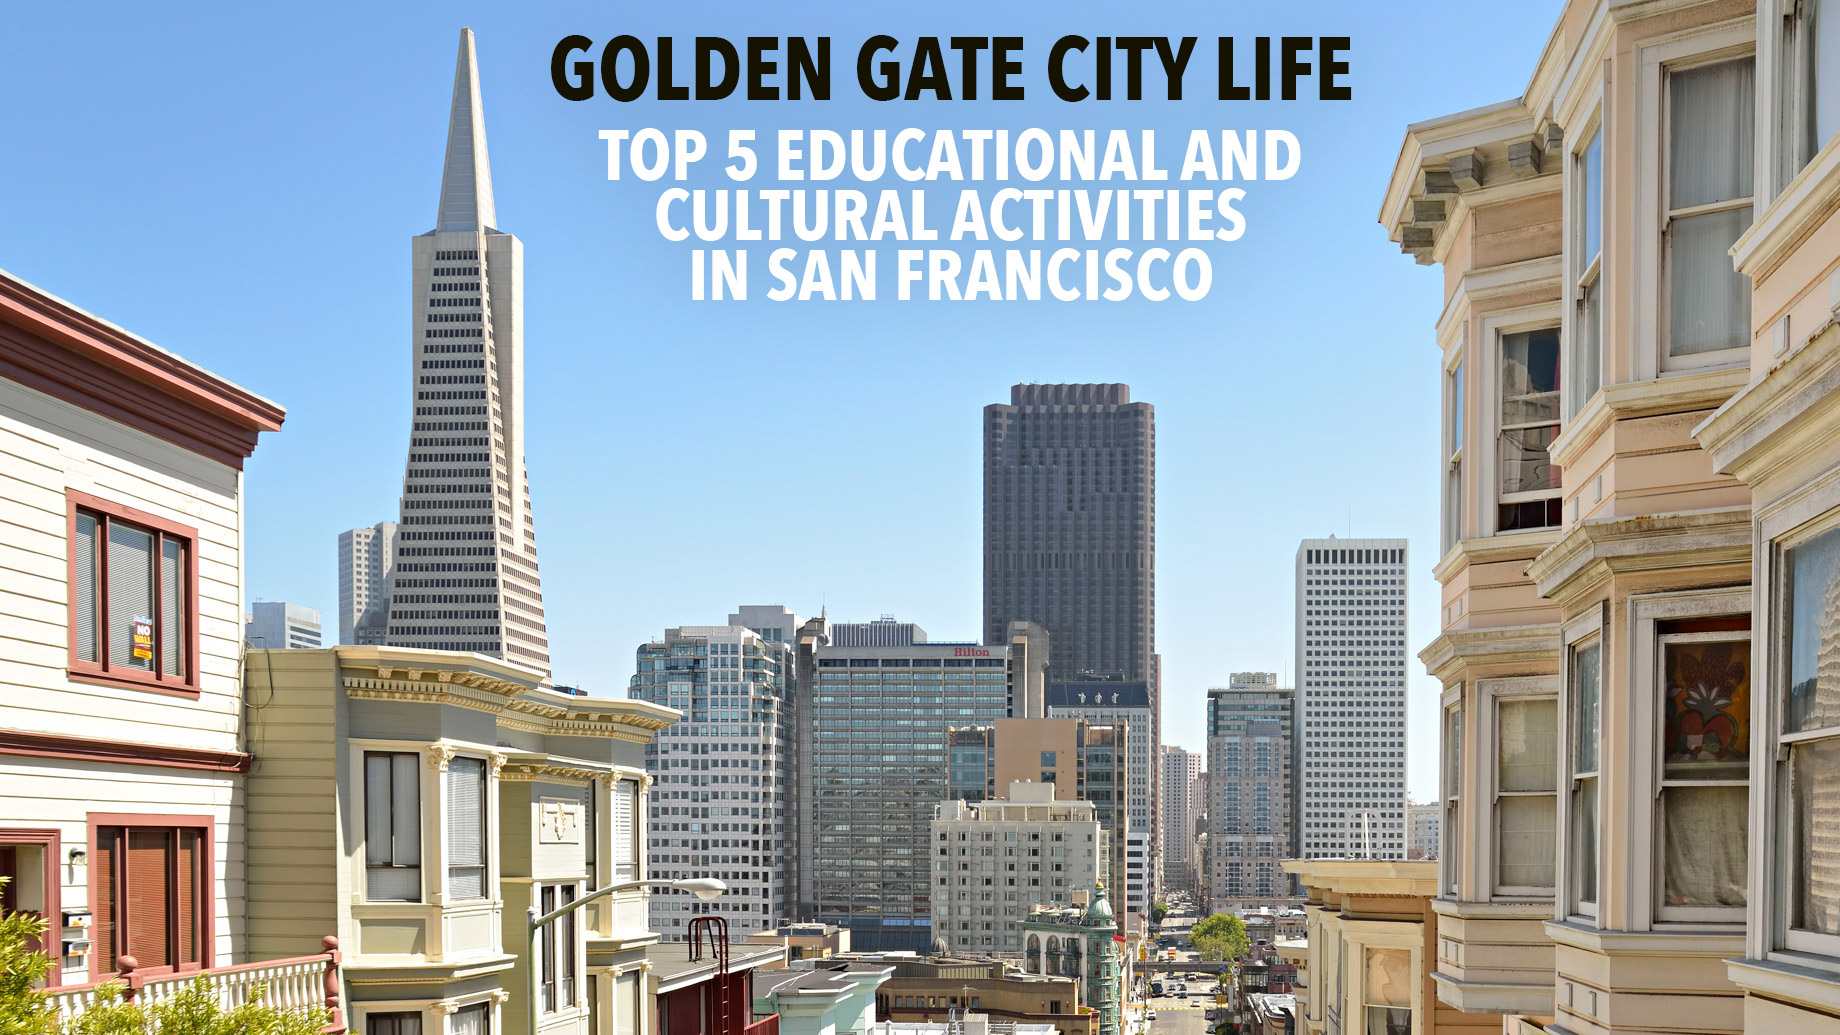 Golden Gate City Life - Top 5 Educational and Cultural Activities in San Francisco